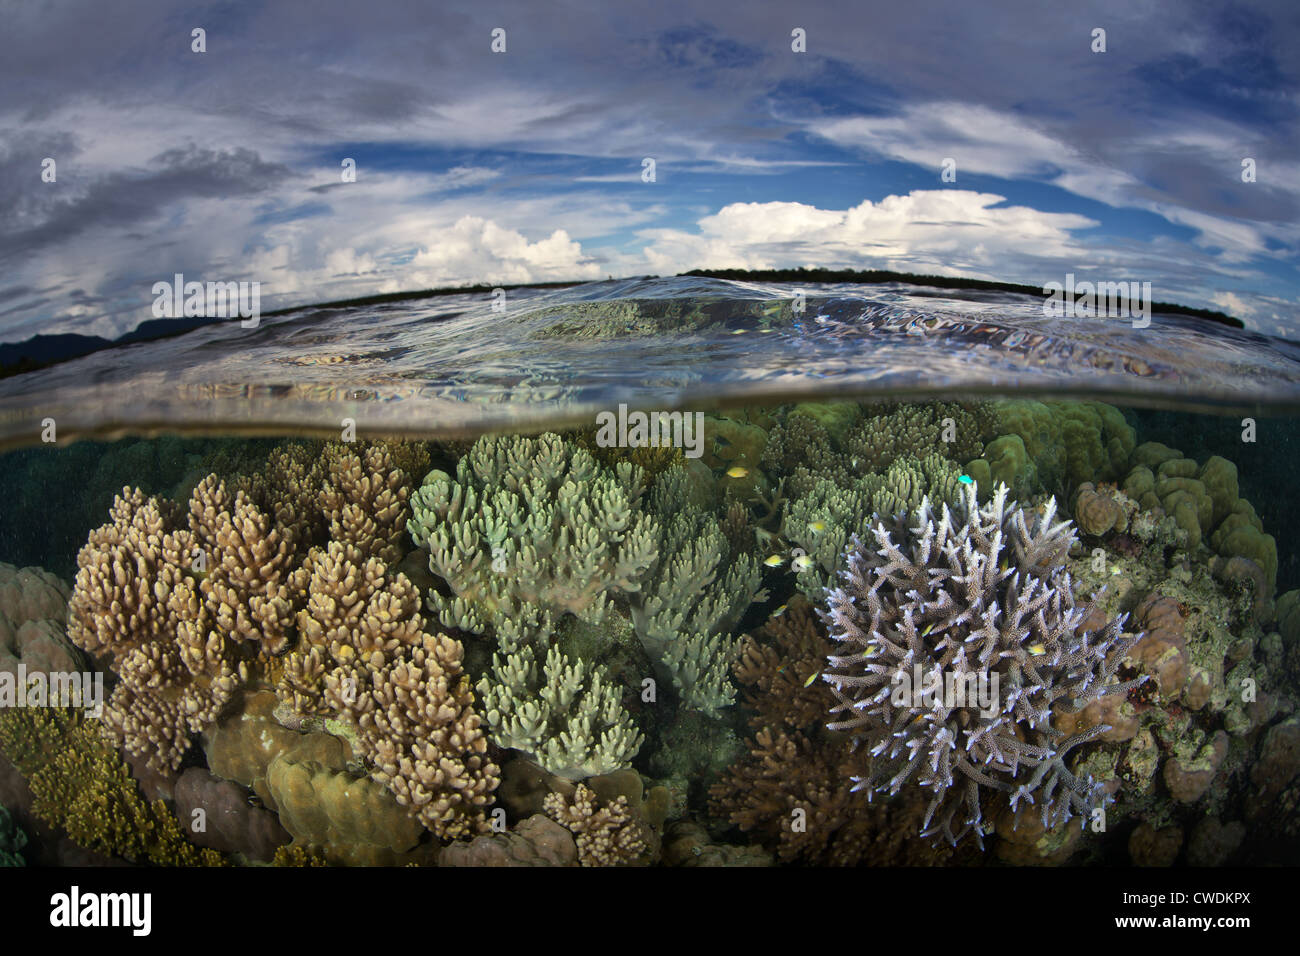 A diverse coral reef grows just under the waterline near a remote village in the Russell Islands, part of the Solomon - Stock Image